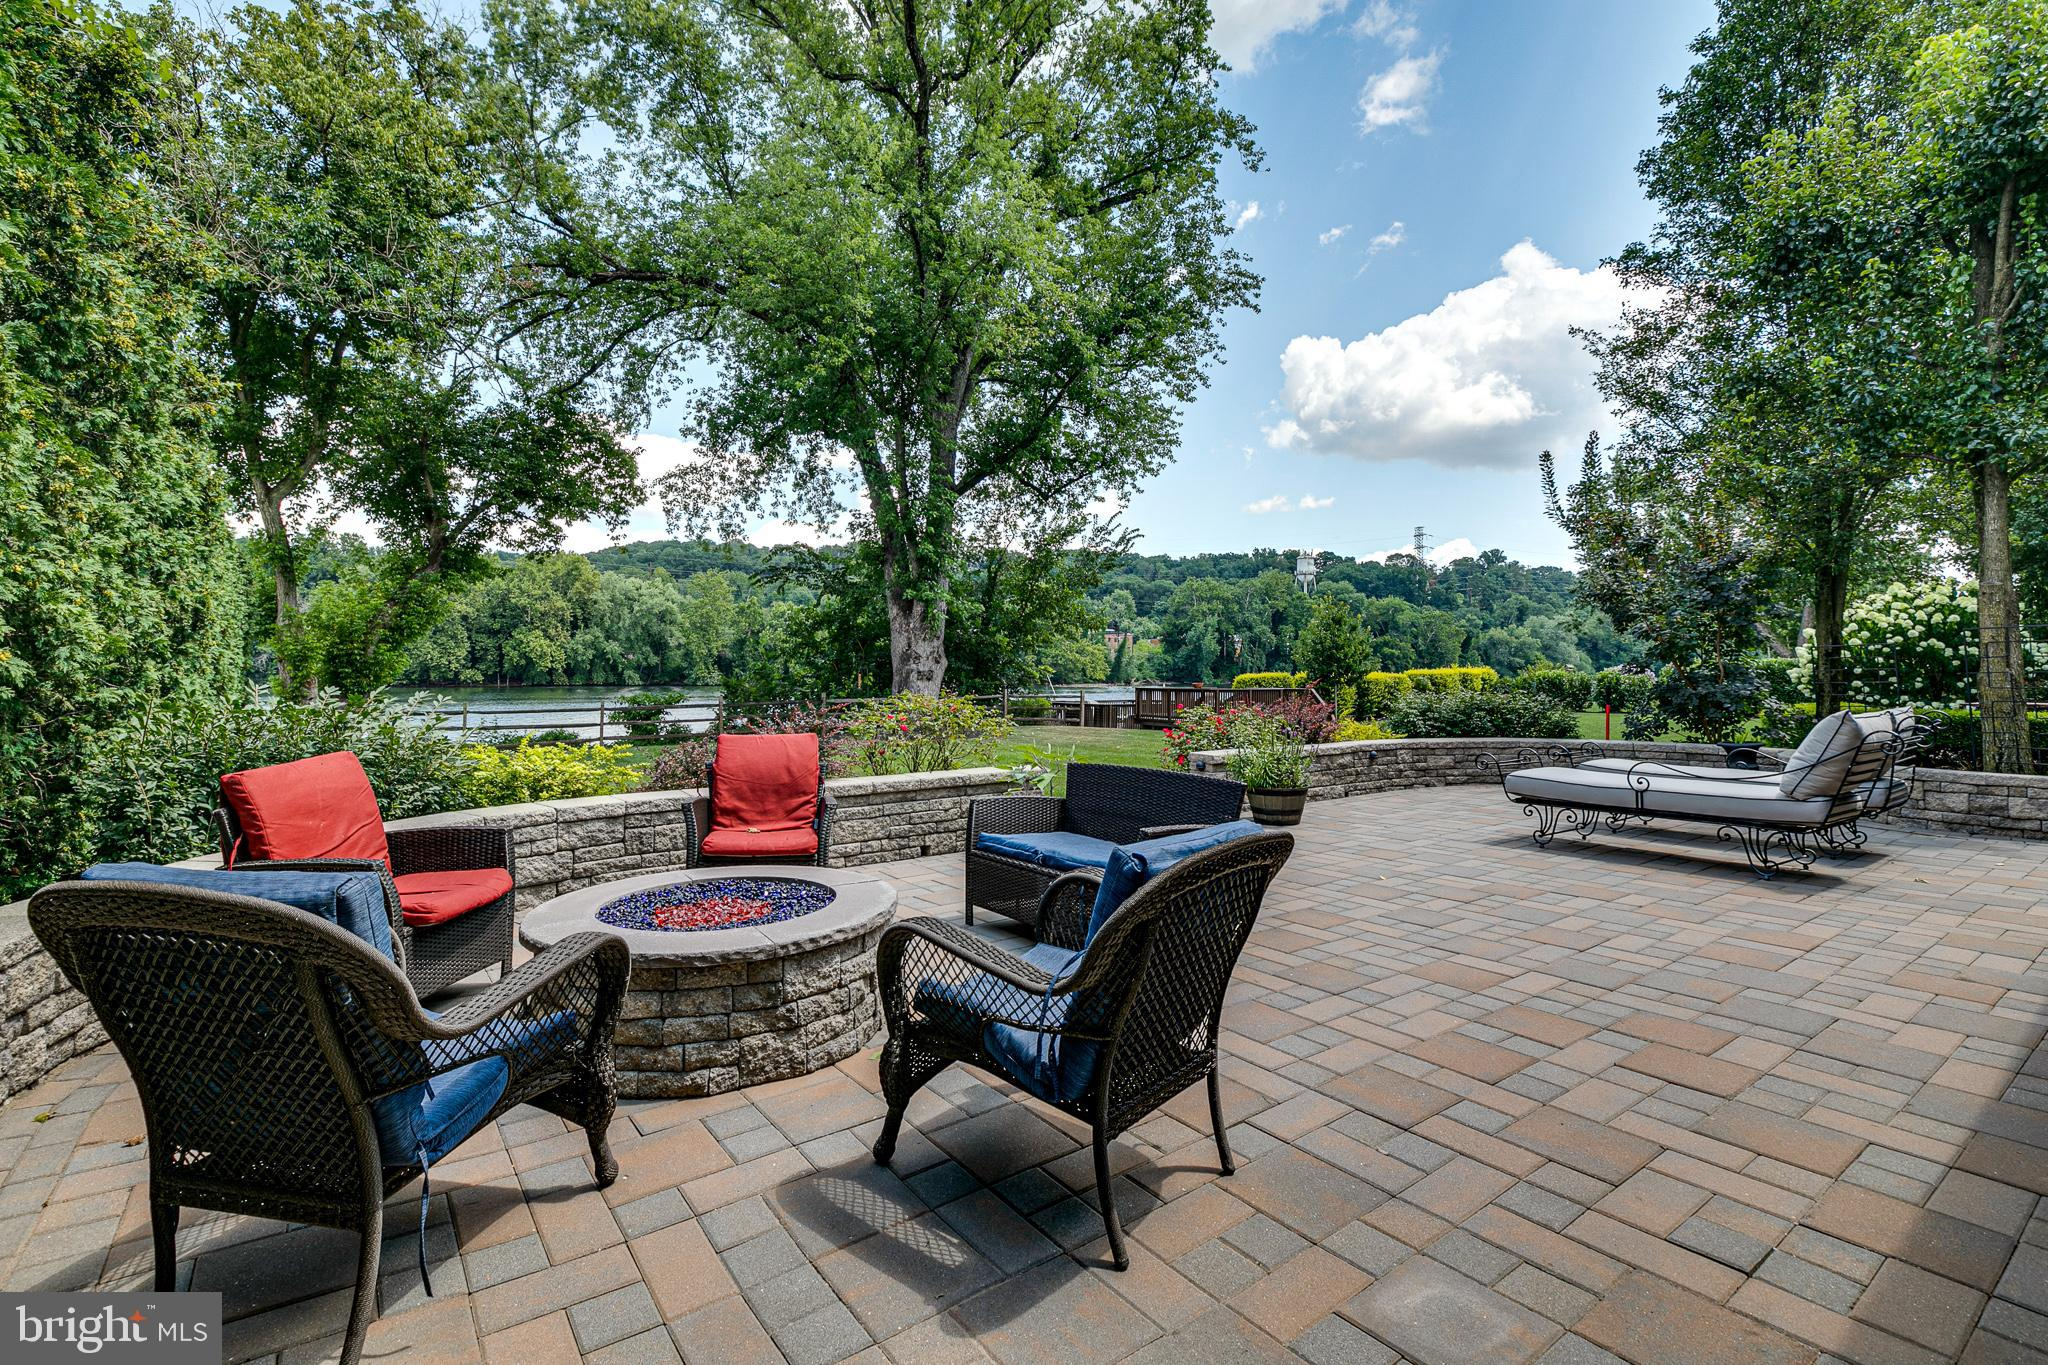 """This beautiful home with river views is nestled in the very coveted neighborhood of Gladwyne.  The setting feels bucolic with lush green and water views, juxtaposed with the conveniences of all that is Gladwyne.  The home was designed with proper reverence for the water, with sliding glass doors and large windows allowing river views from every room in the house. The main floor boasts a spacious living room with a fireplace with a marble hearth and mantle, a separate dining room, powder room and a brand new kitchen with 42"""" white cabinets, Quartz countertops, stainless steel appliances and subway tile backsplash.   This entire floor beams with light and leads out to the deck through two sets of 12' foot sliding doors that overlook the lush yard. The 3rd floor features 3 spacious bedrooms, 2 full bathrooms and the laundry area with washer and dryer. The primary suite feels like a private retreat and offers a large bedroom, a generous walk-in closet and a gorgeous bathroom with a glass enclosed marble shower with a rain shower, hand held shower fixture and body spray fixtures.  The upper level with a fireplace and balcony overlooking the trees can be used as the 4th bedroom or media room.  The ground floor is ideally situated with a home office with sliding doors leading out onto the back patio along with access to the 2-car garage.  Outside enjoy the EP Henry paver patio with accent lighting and a built-in gas fireplace.  This is a nature lover's dream -with kayaking, paddleboarding and fishing from your own backyard. Quick commute to Center City, easy access to Manayunk, 76, 476 and King of Prussia.  All located in the award winning school district of Lower Merion."""